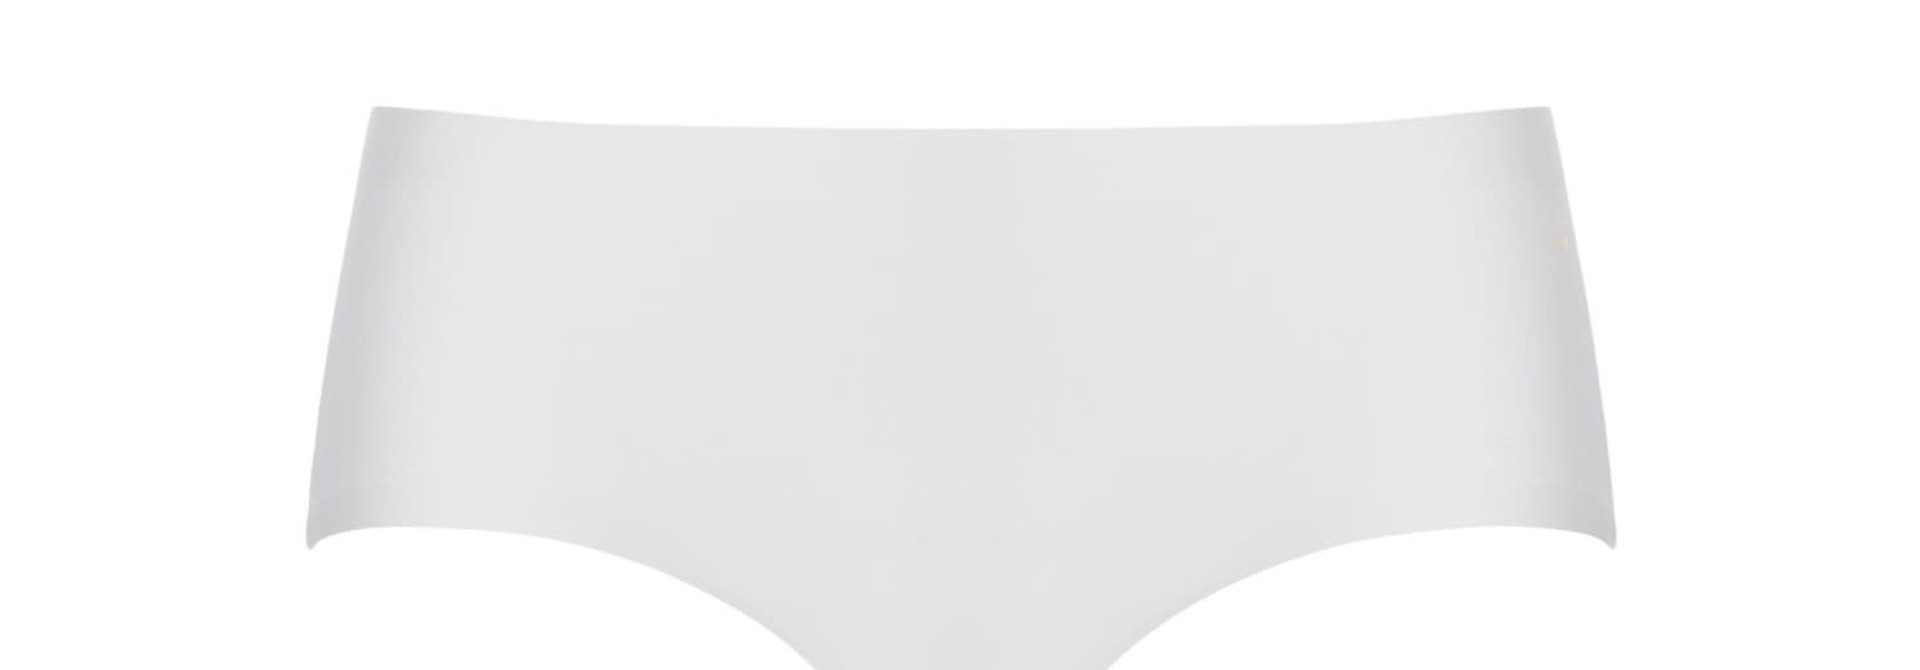 Hipster Secrets 30175 - offwhite